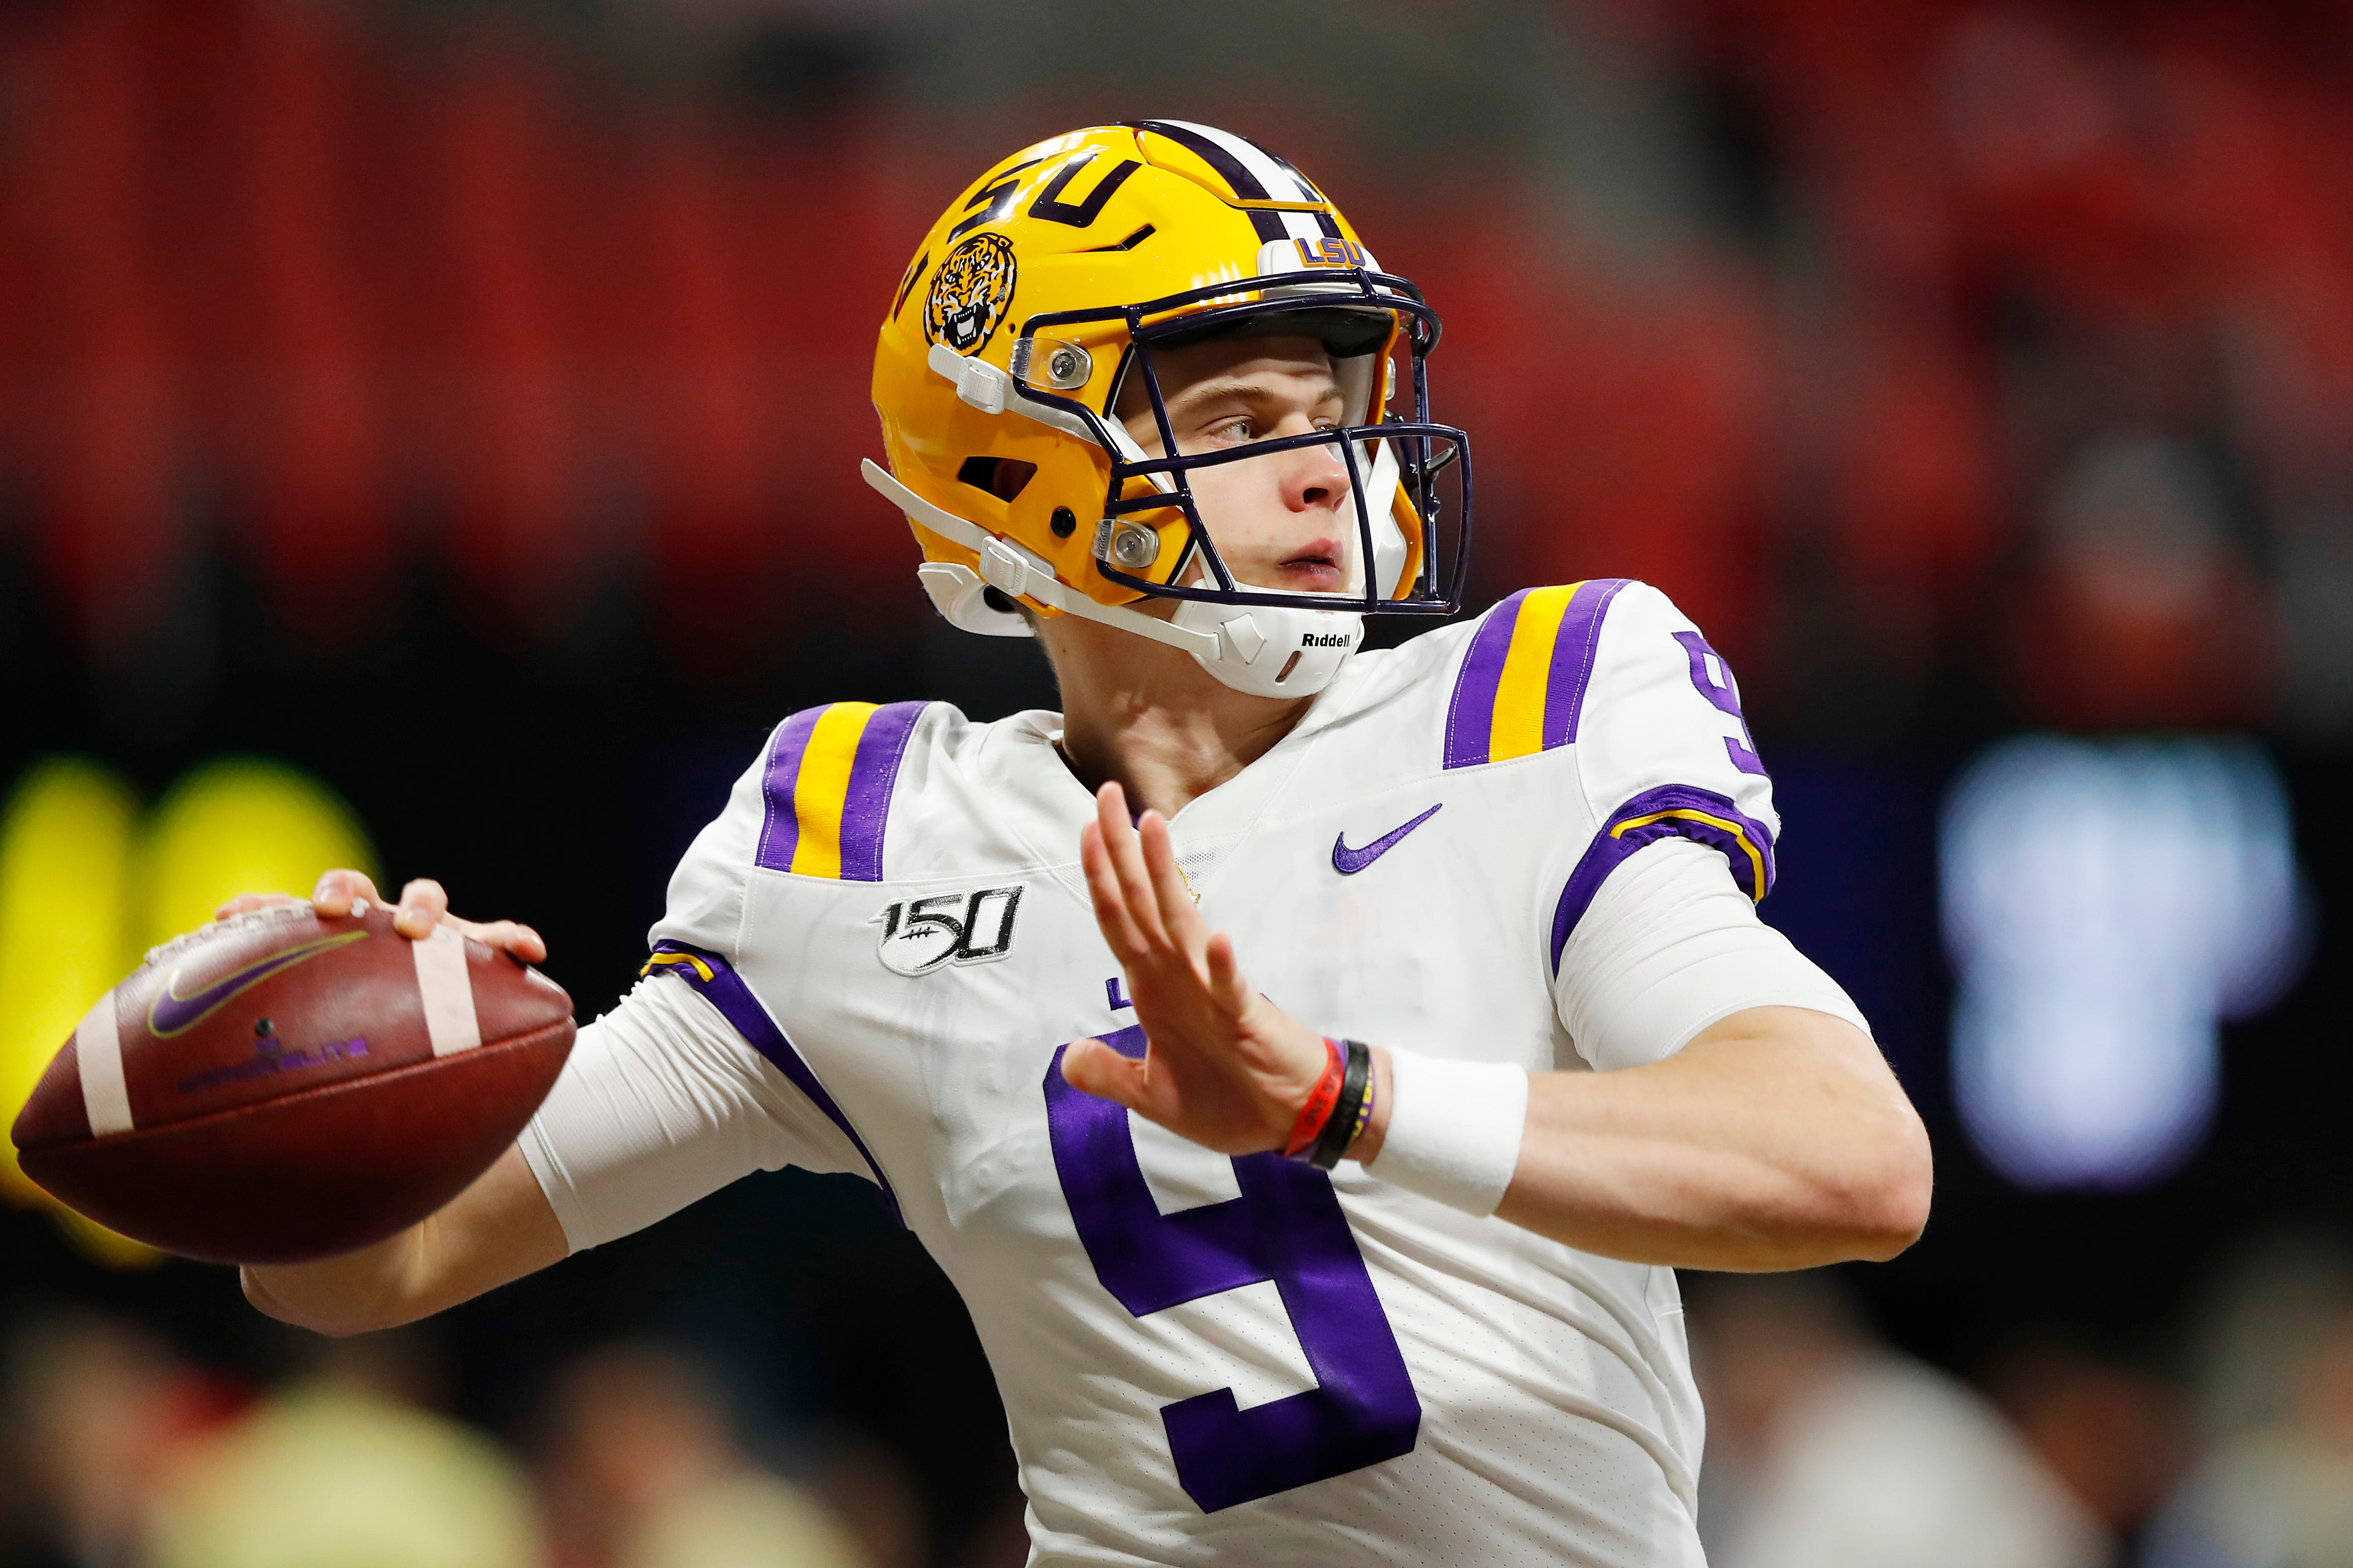 LSU QB Joe Burrow throws pass to himself on opening drive of SEC Championship Game